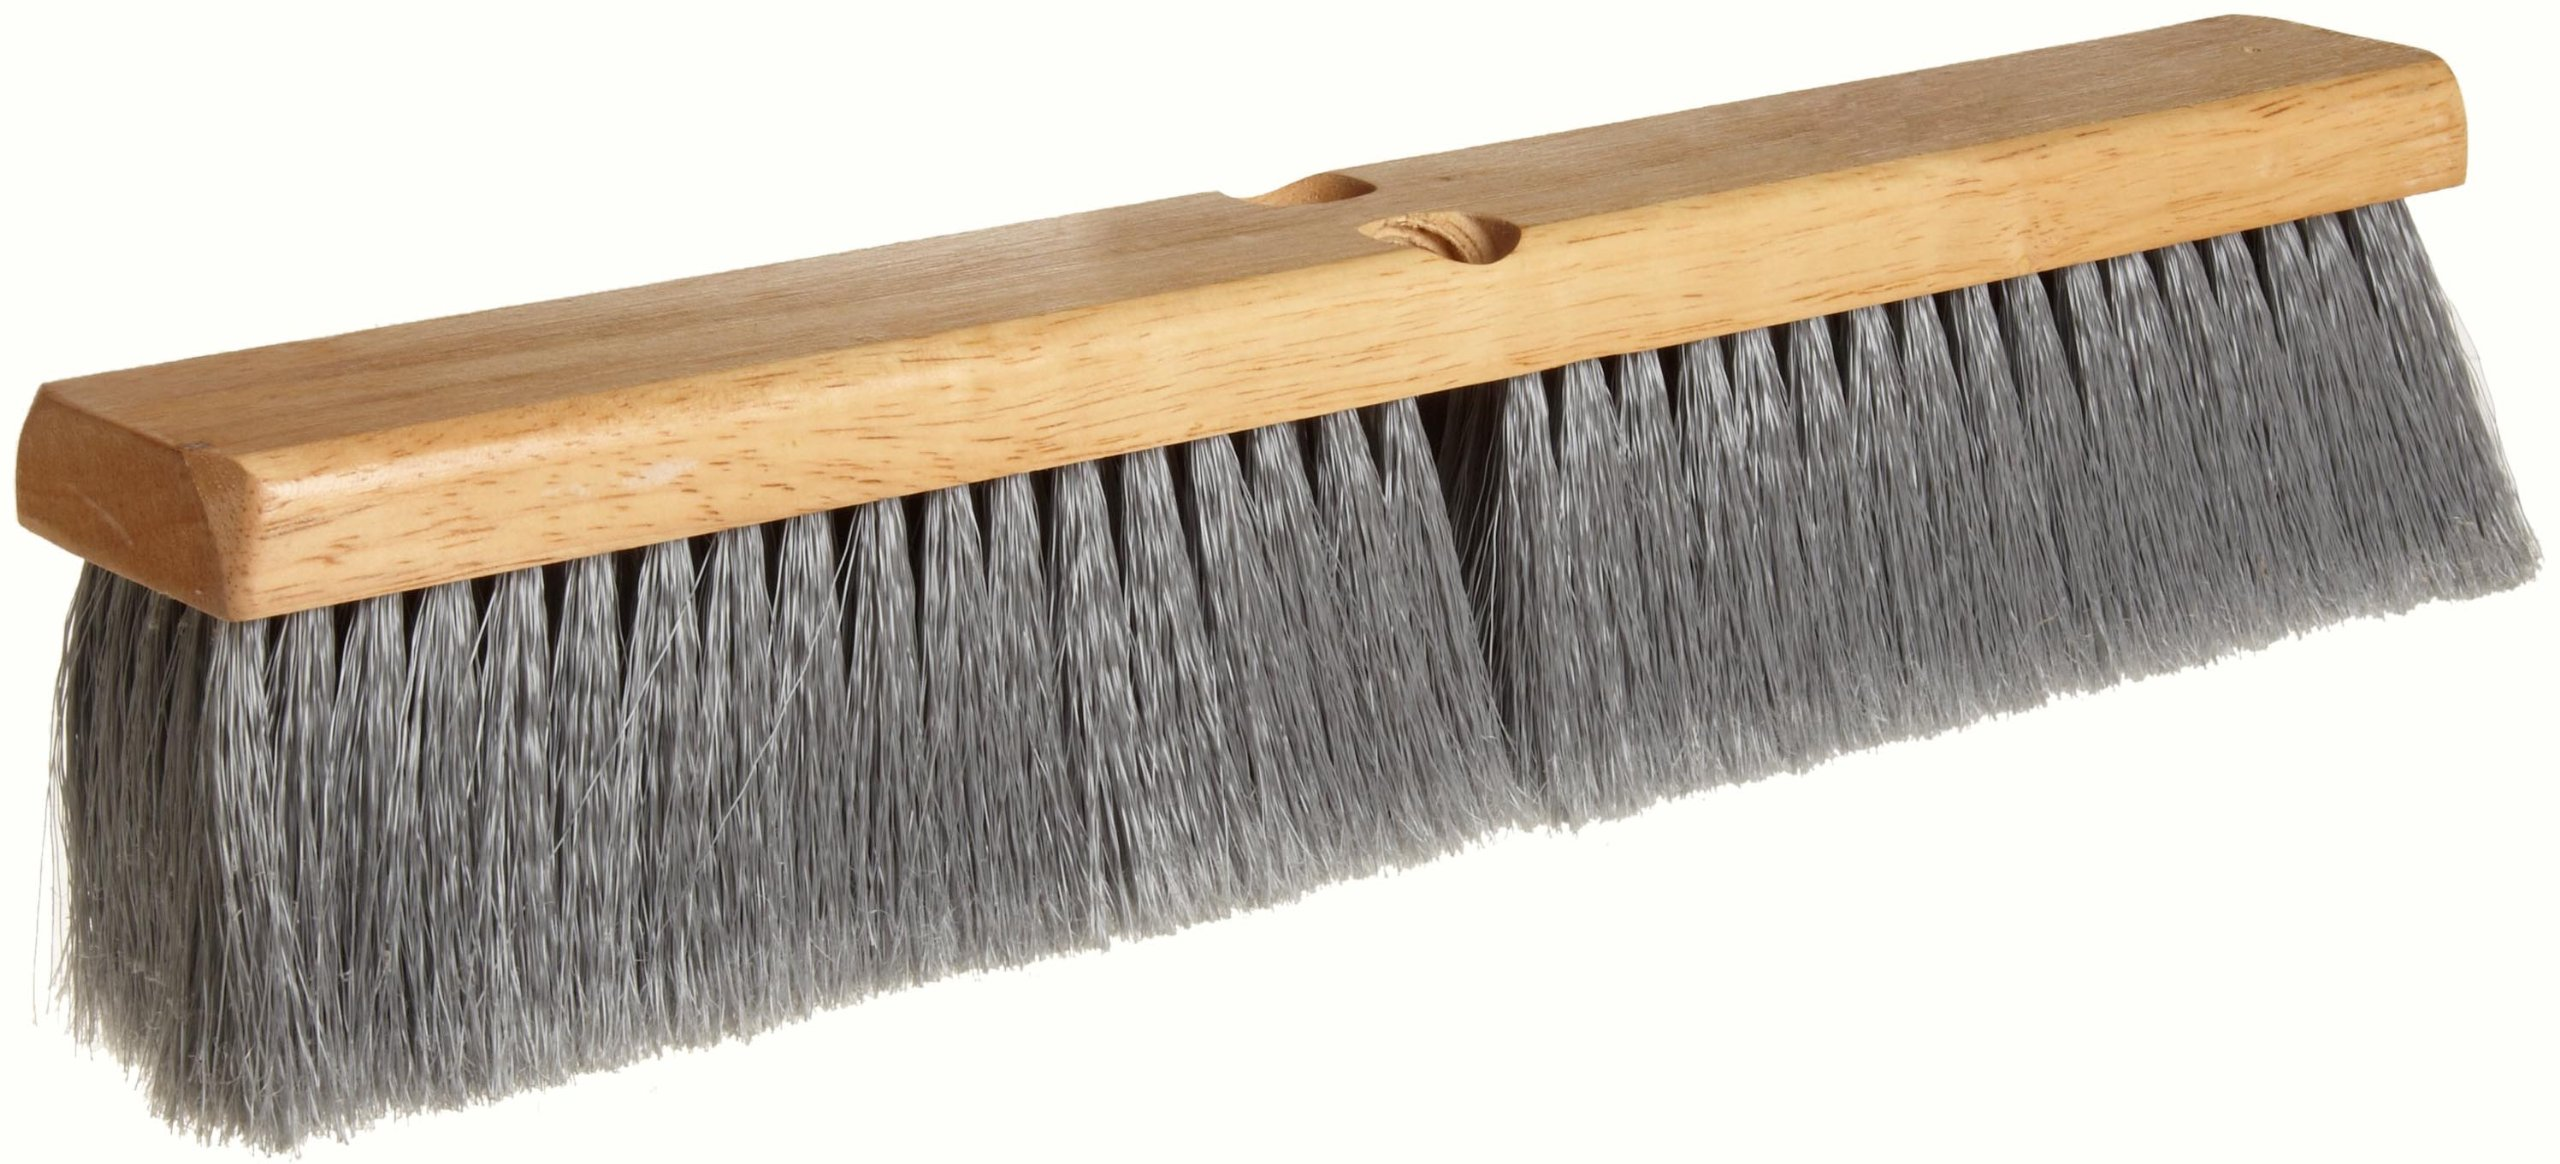 Weiler 42041 Polystyrene Fine Sweep Floor Brush, 2-1/2'' Handle Width, 18'' Overall Length, Natural